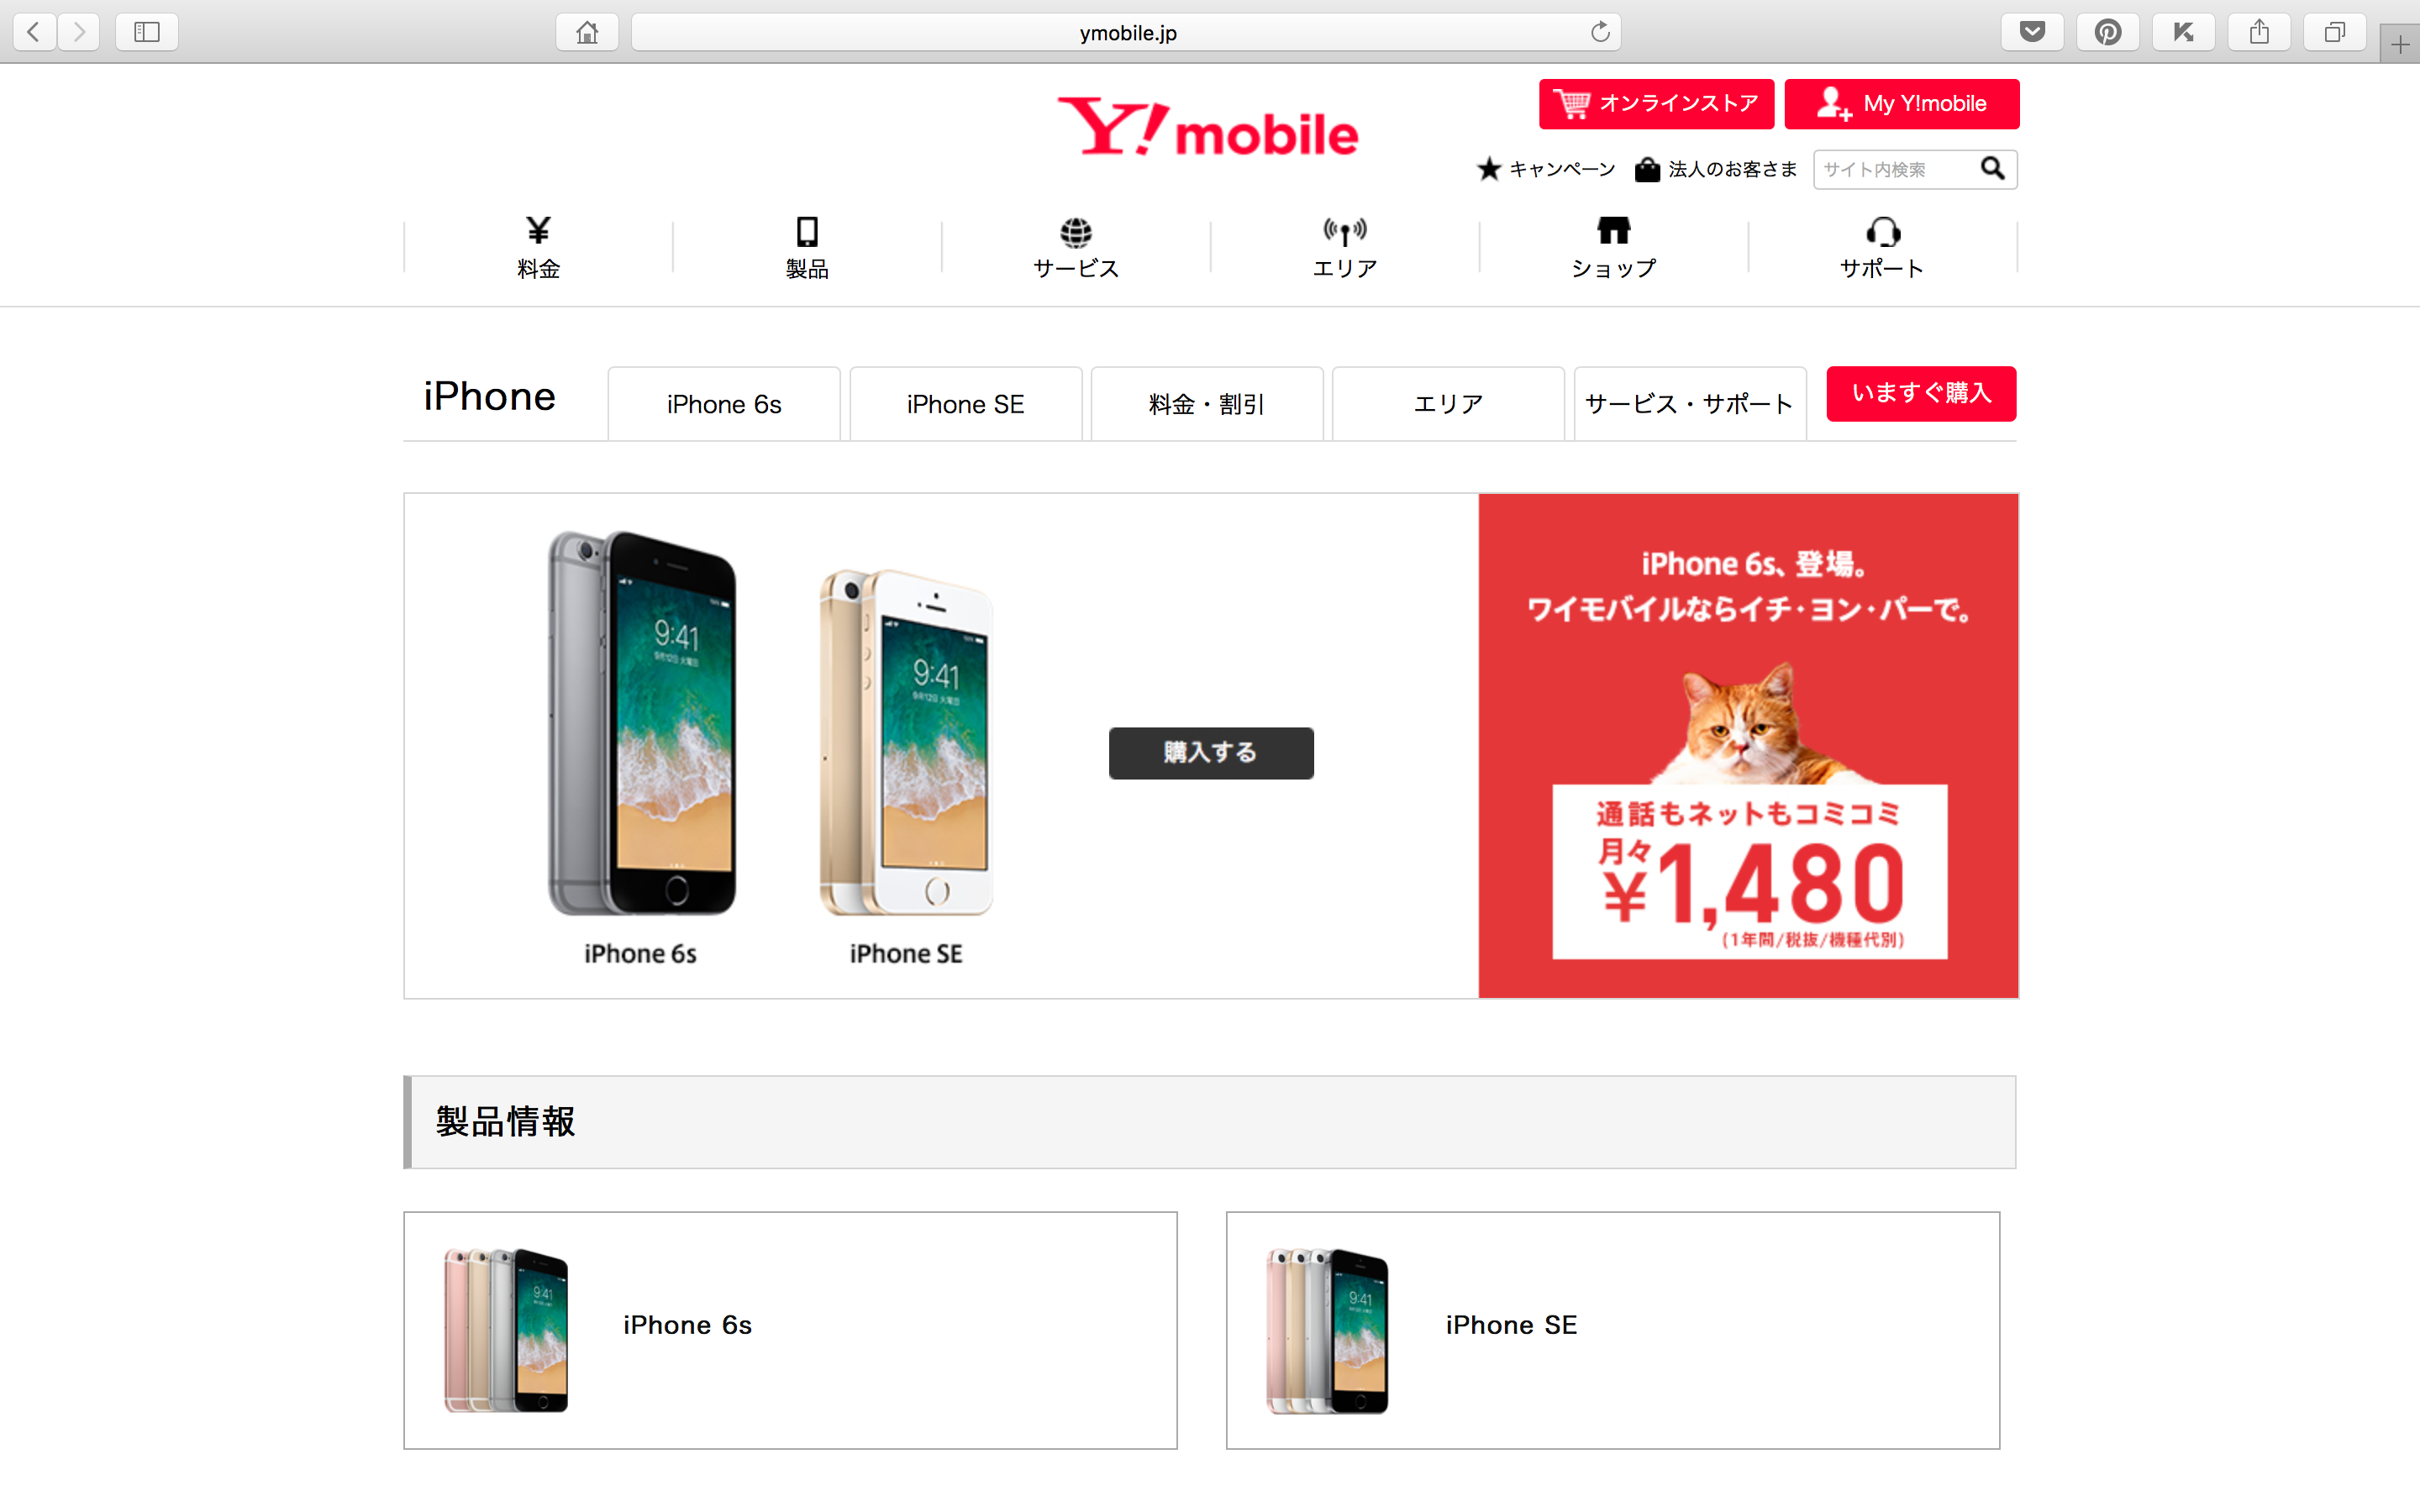 iPhone ワイモバイル(Y!mobile)